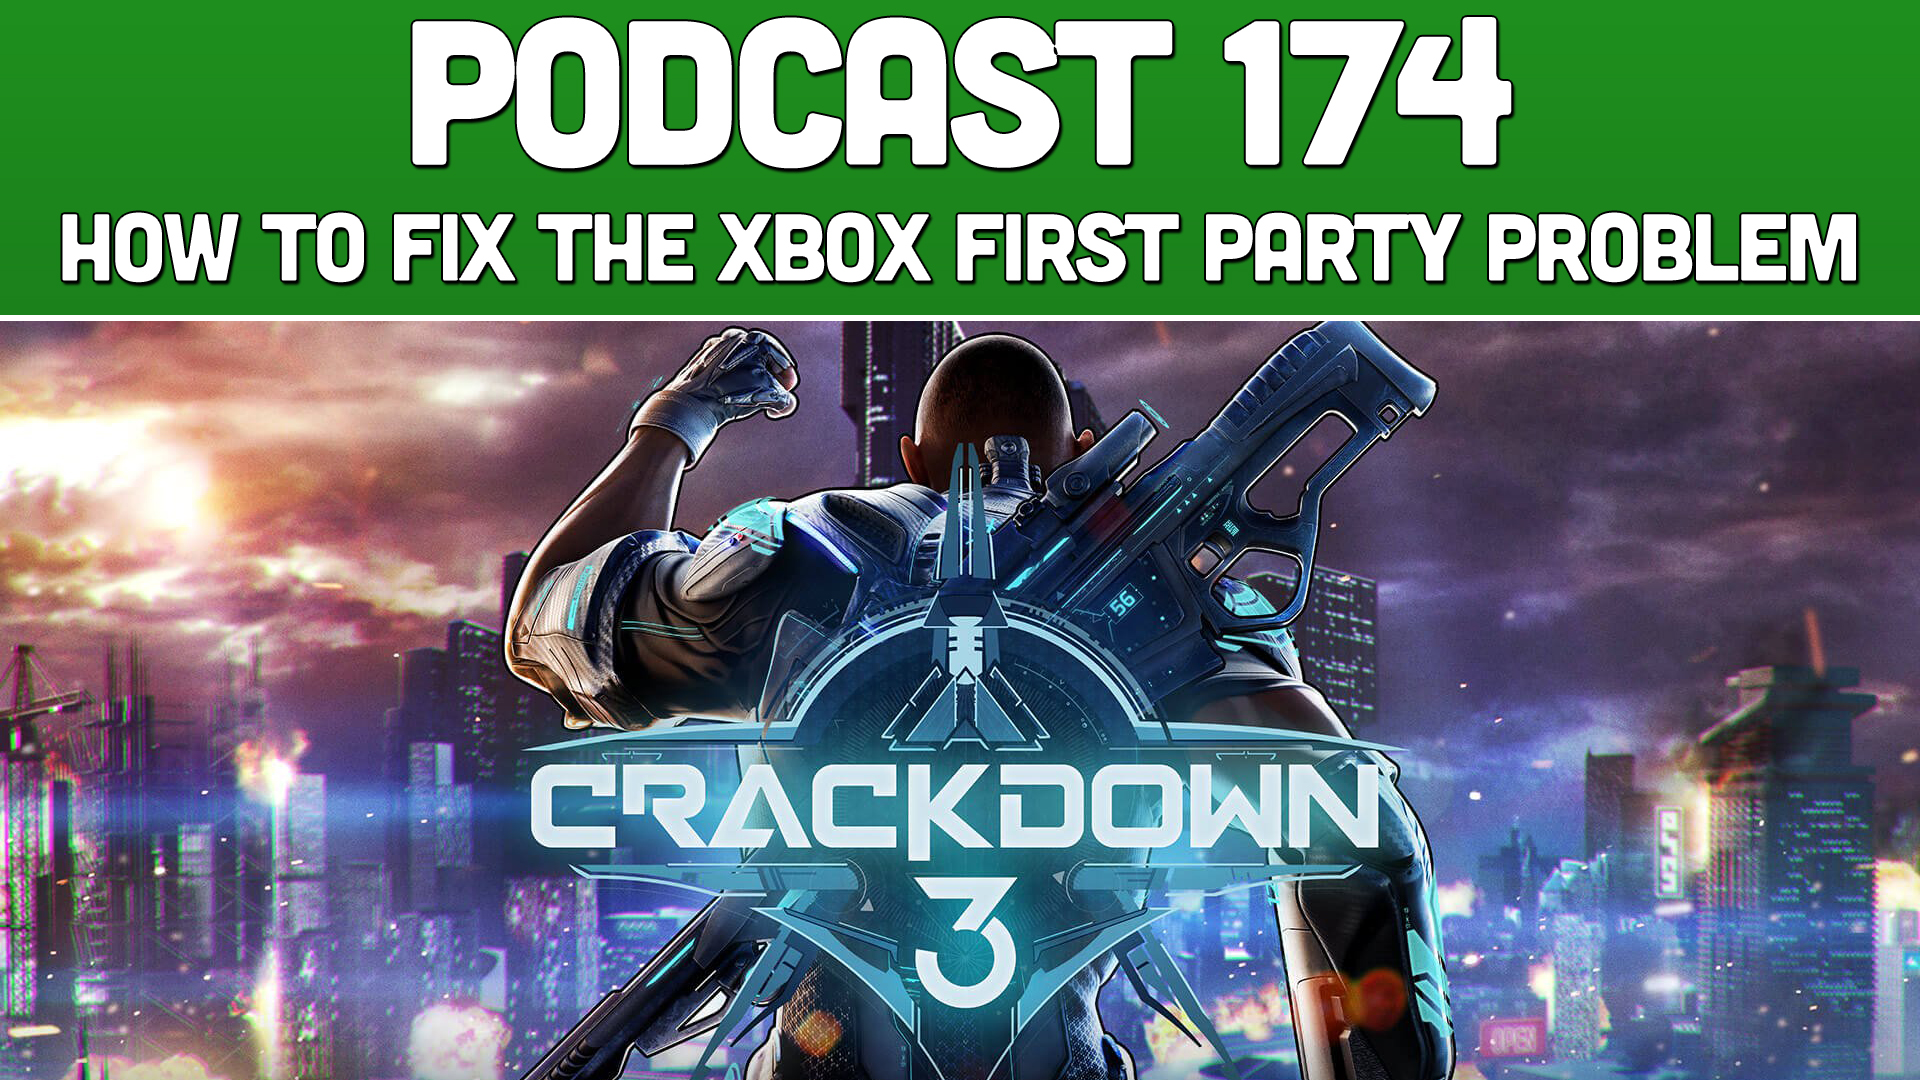 Podcast 174: How to Fix The Xbox First Party Problem